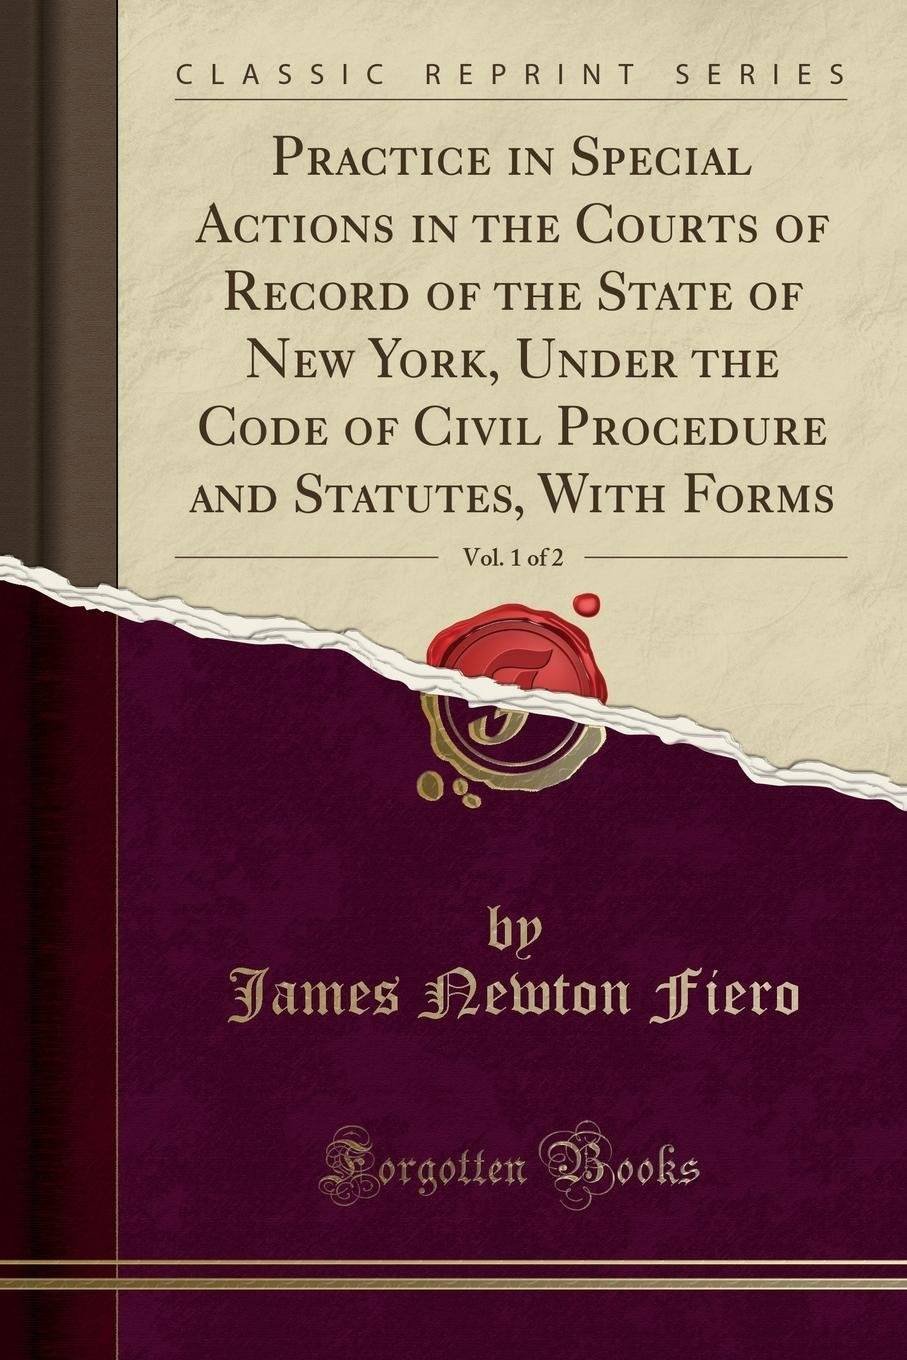 Download Practice in Special Actions in the Courts of Record of the State of New York, Under the Code of Civil Procedure and Statutes, With Forms, Vol. 1 of 2 (Classic Reprint) pdf epub